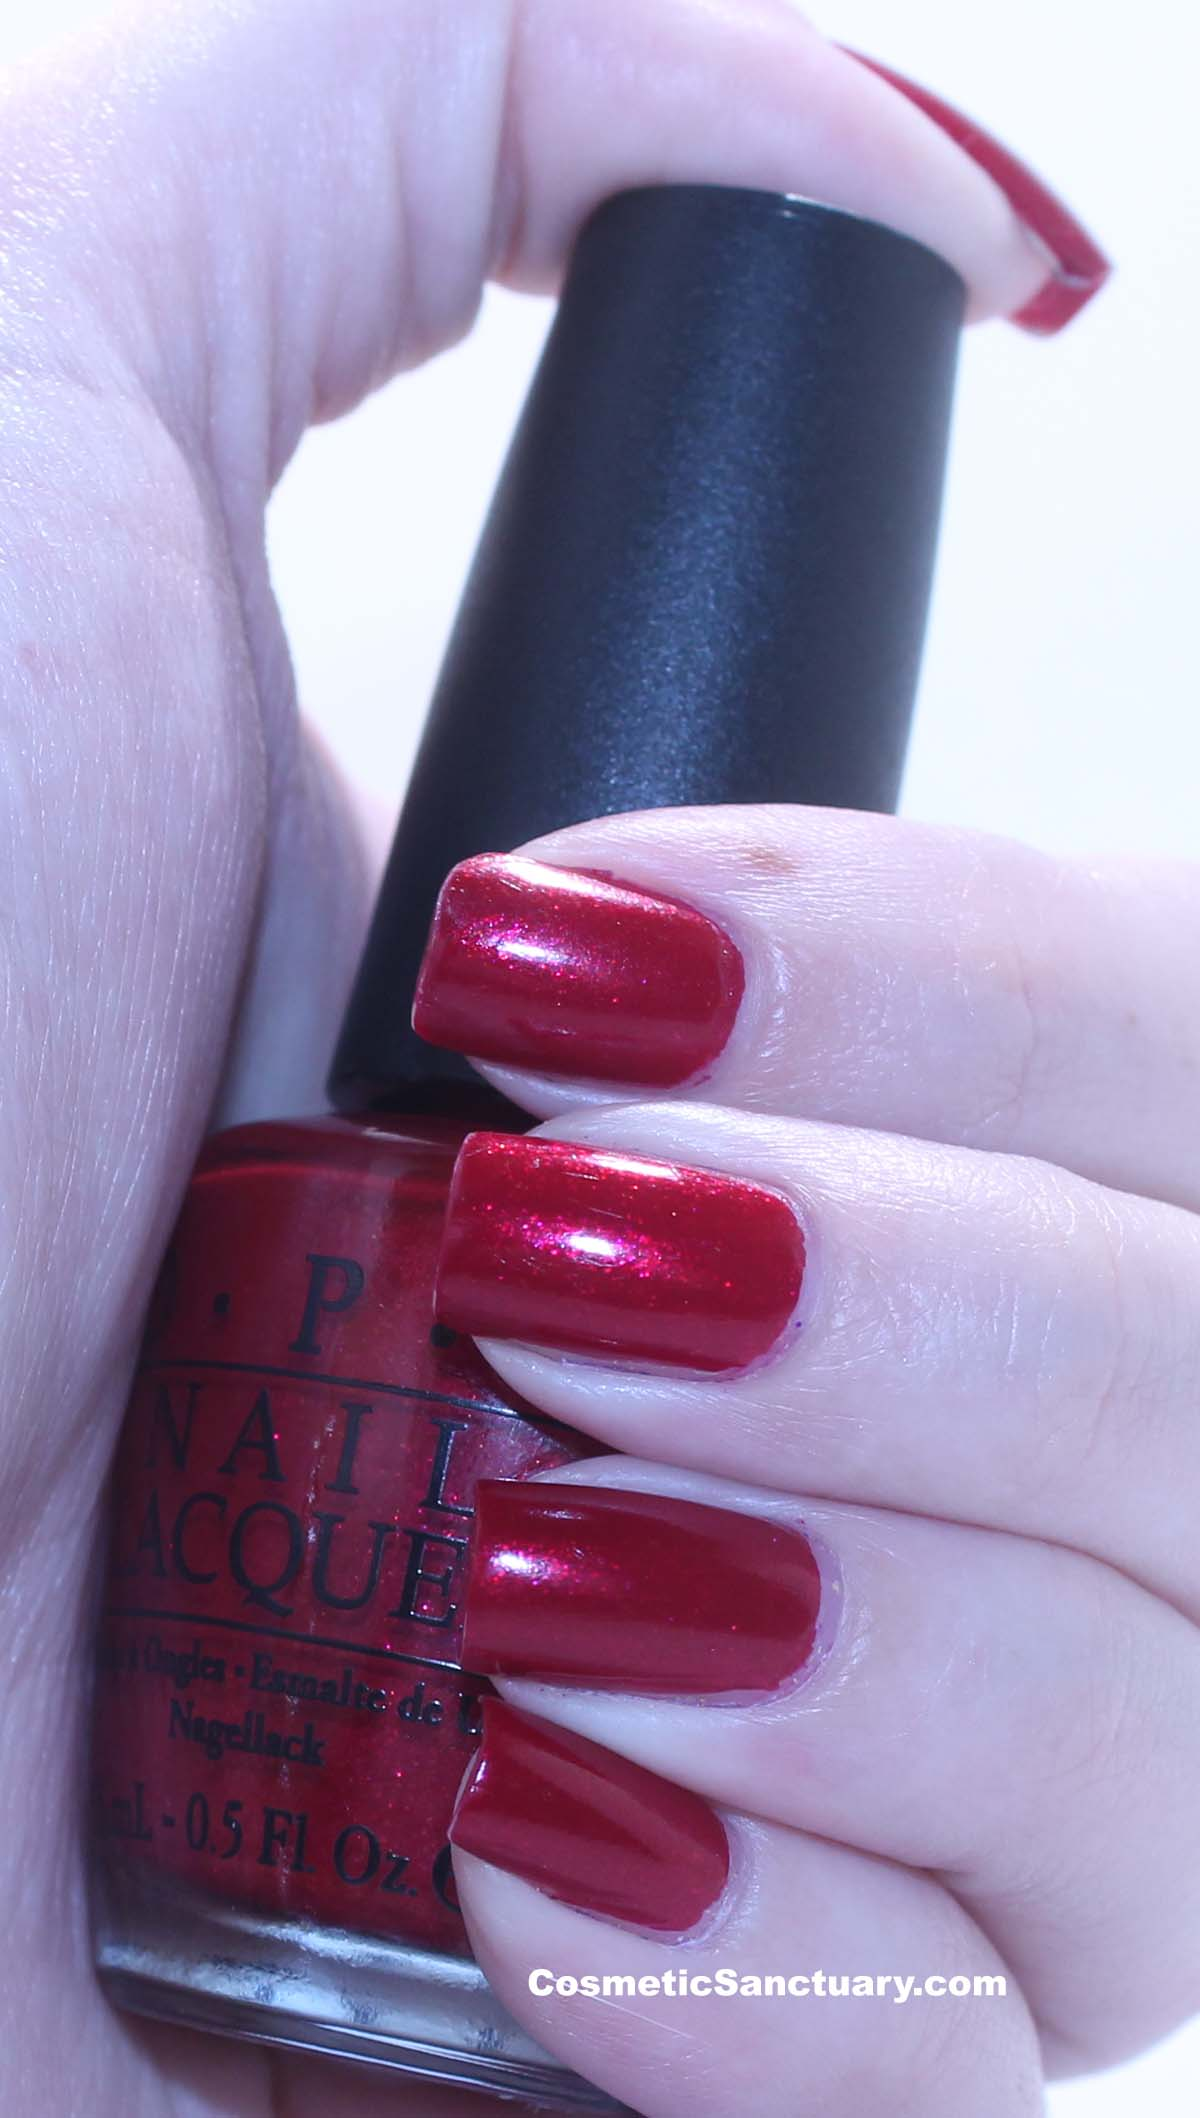 OPI Nail Polish and Merle Norman Lip Polish in Hussy Swatches and Review